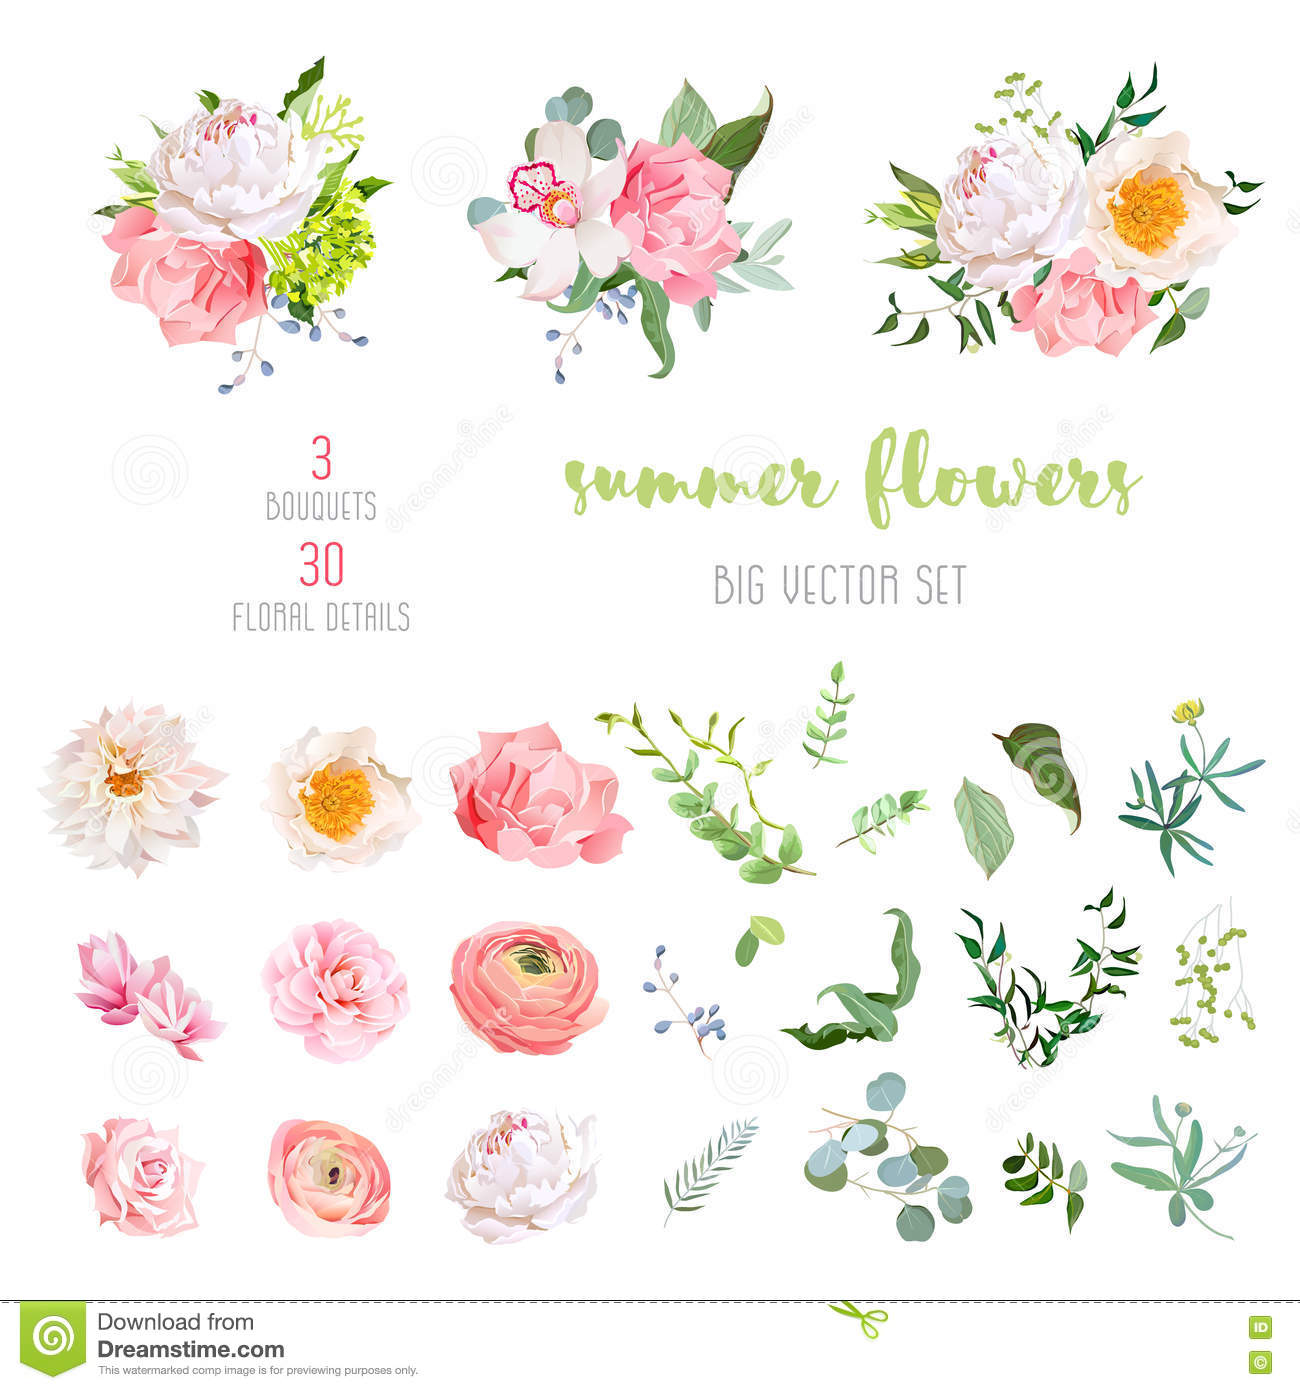 Ranunculus, rose, peony, dahlia, camellia, carnation, orchid, hydrangea flowers and decorative plants big vector collection